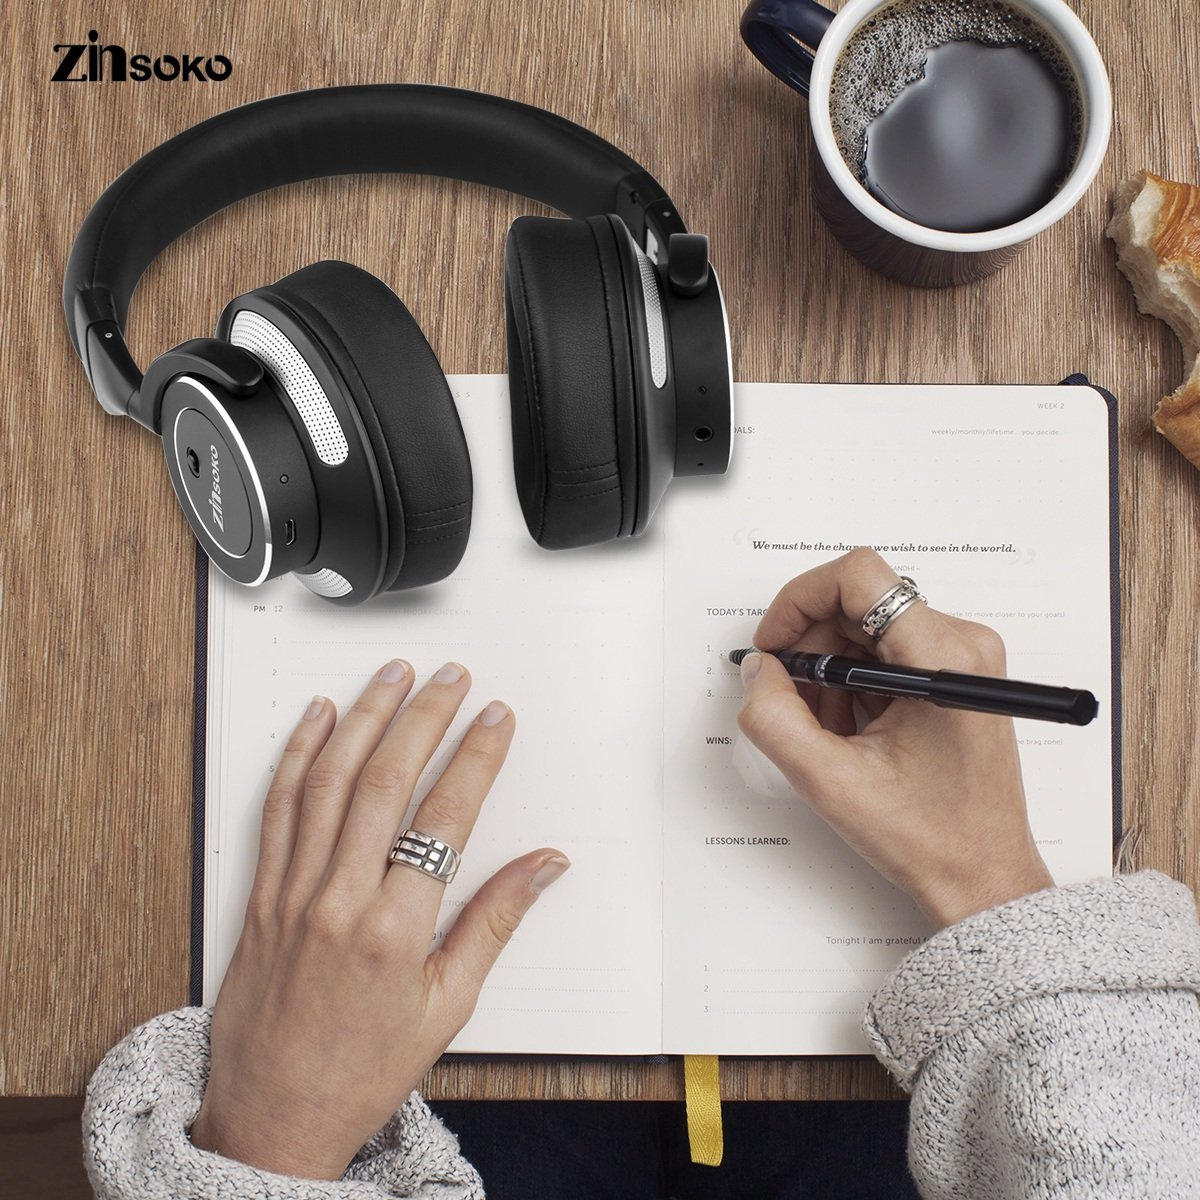 Zinsoko Z-H01 Wireless Active Noise Cancelling Headphones Over Ear Bluetooth Headphone Foldable with HI-FI Deep Bass, Comfortable Protein Earpad, Carry Case for Air Travel, 16 Hrs Playtime (Black)